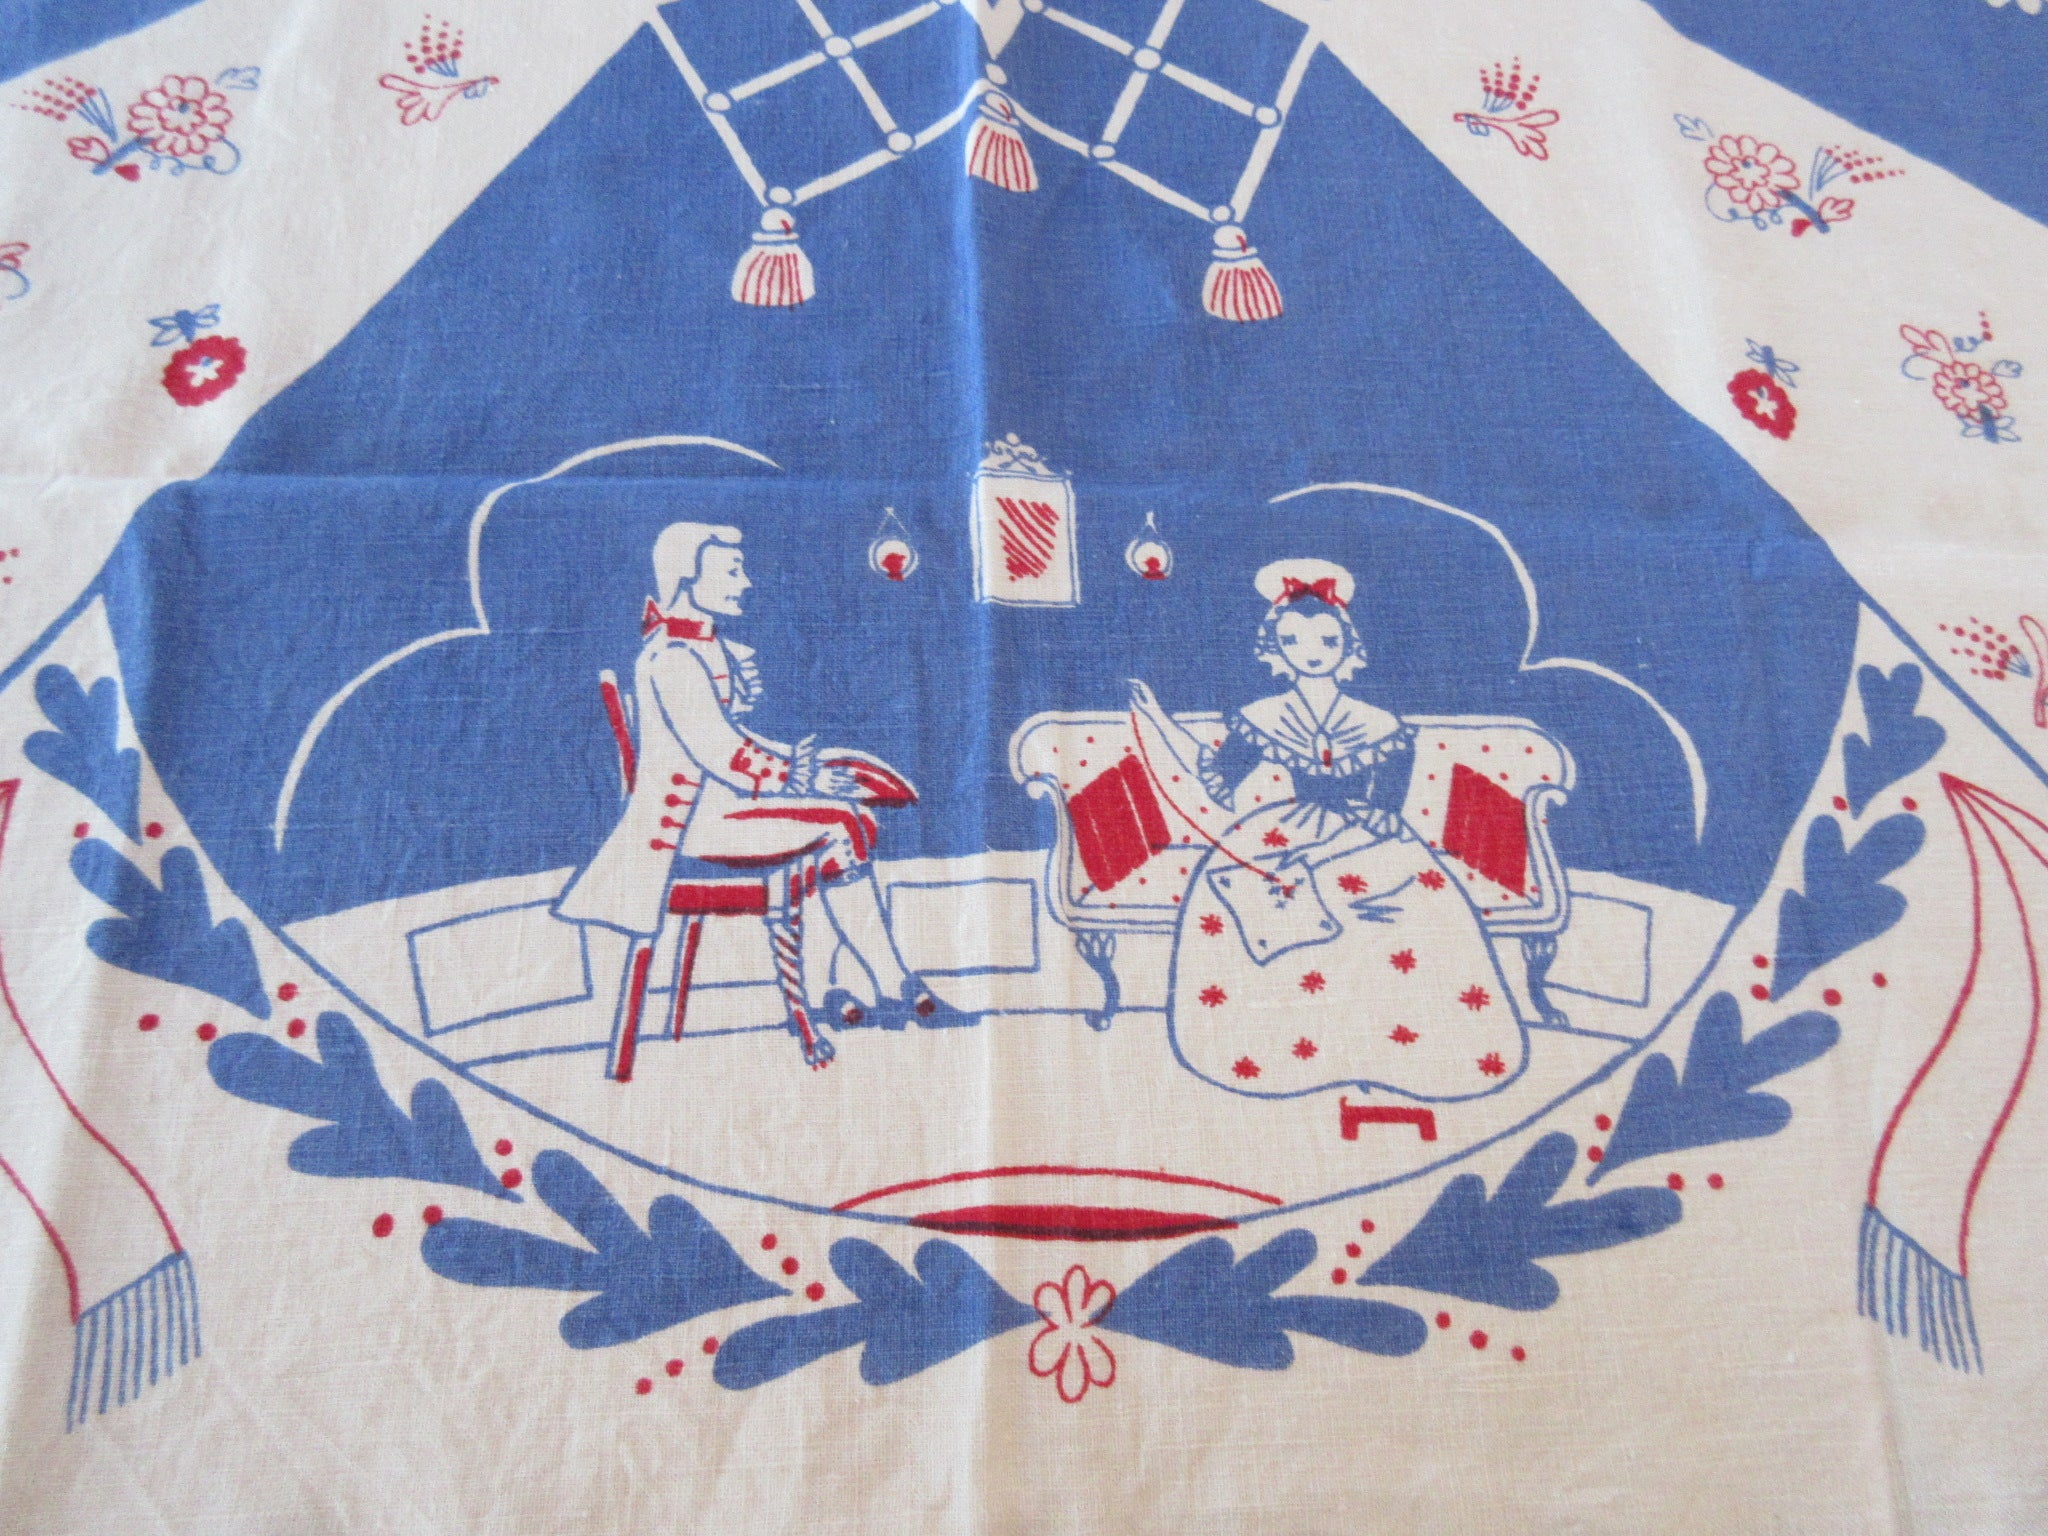 Rare Patriotic Betsy Ross Flag Emblem Novelty Vintage Printed Tablecloth (52 X 51)